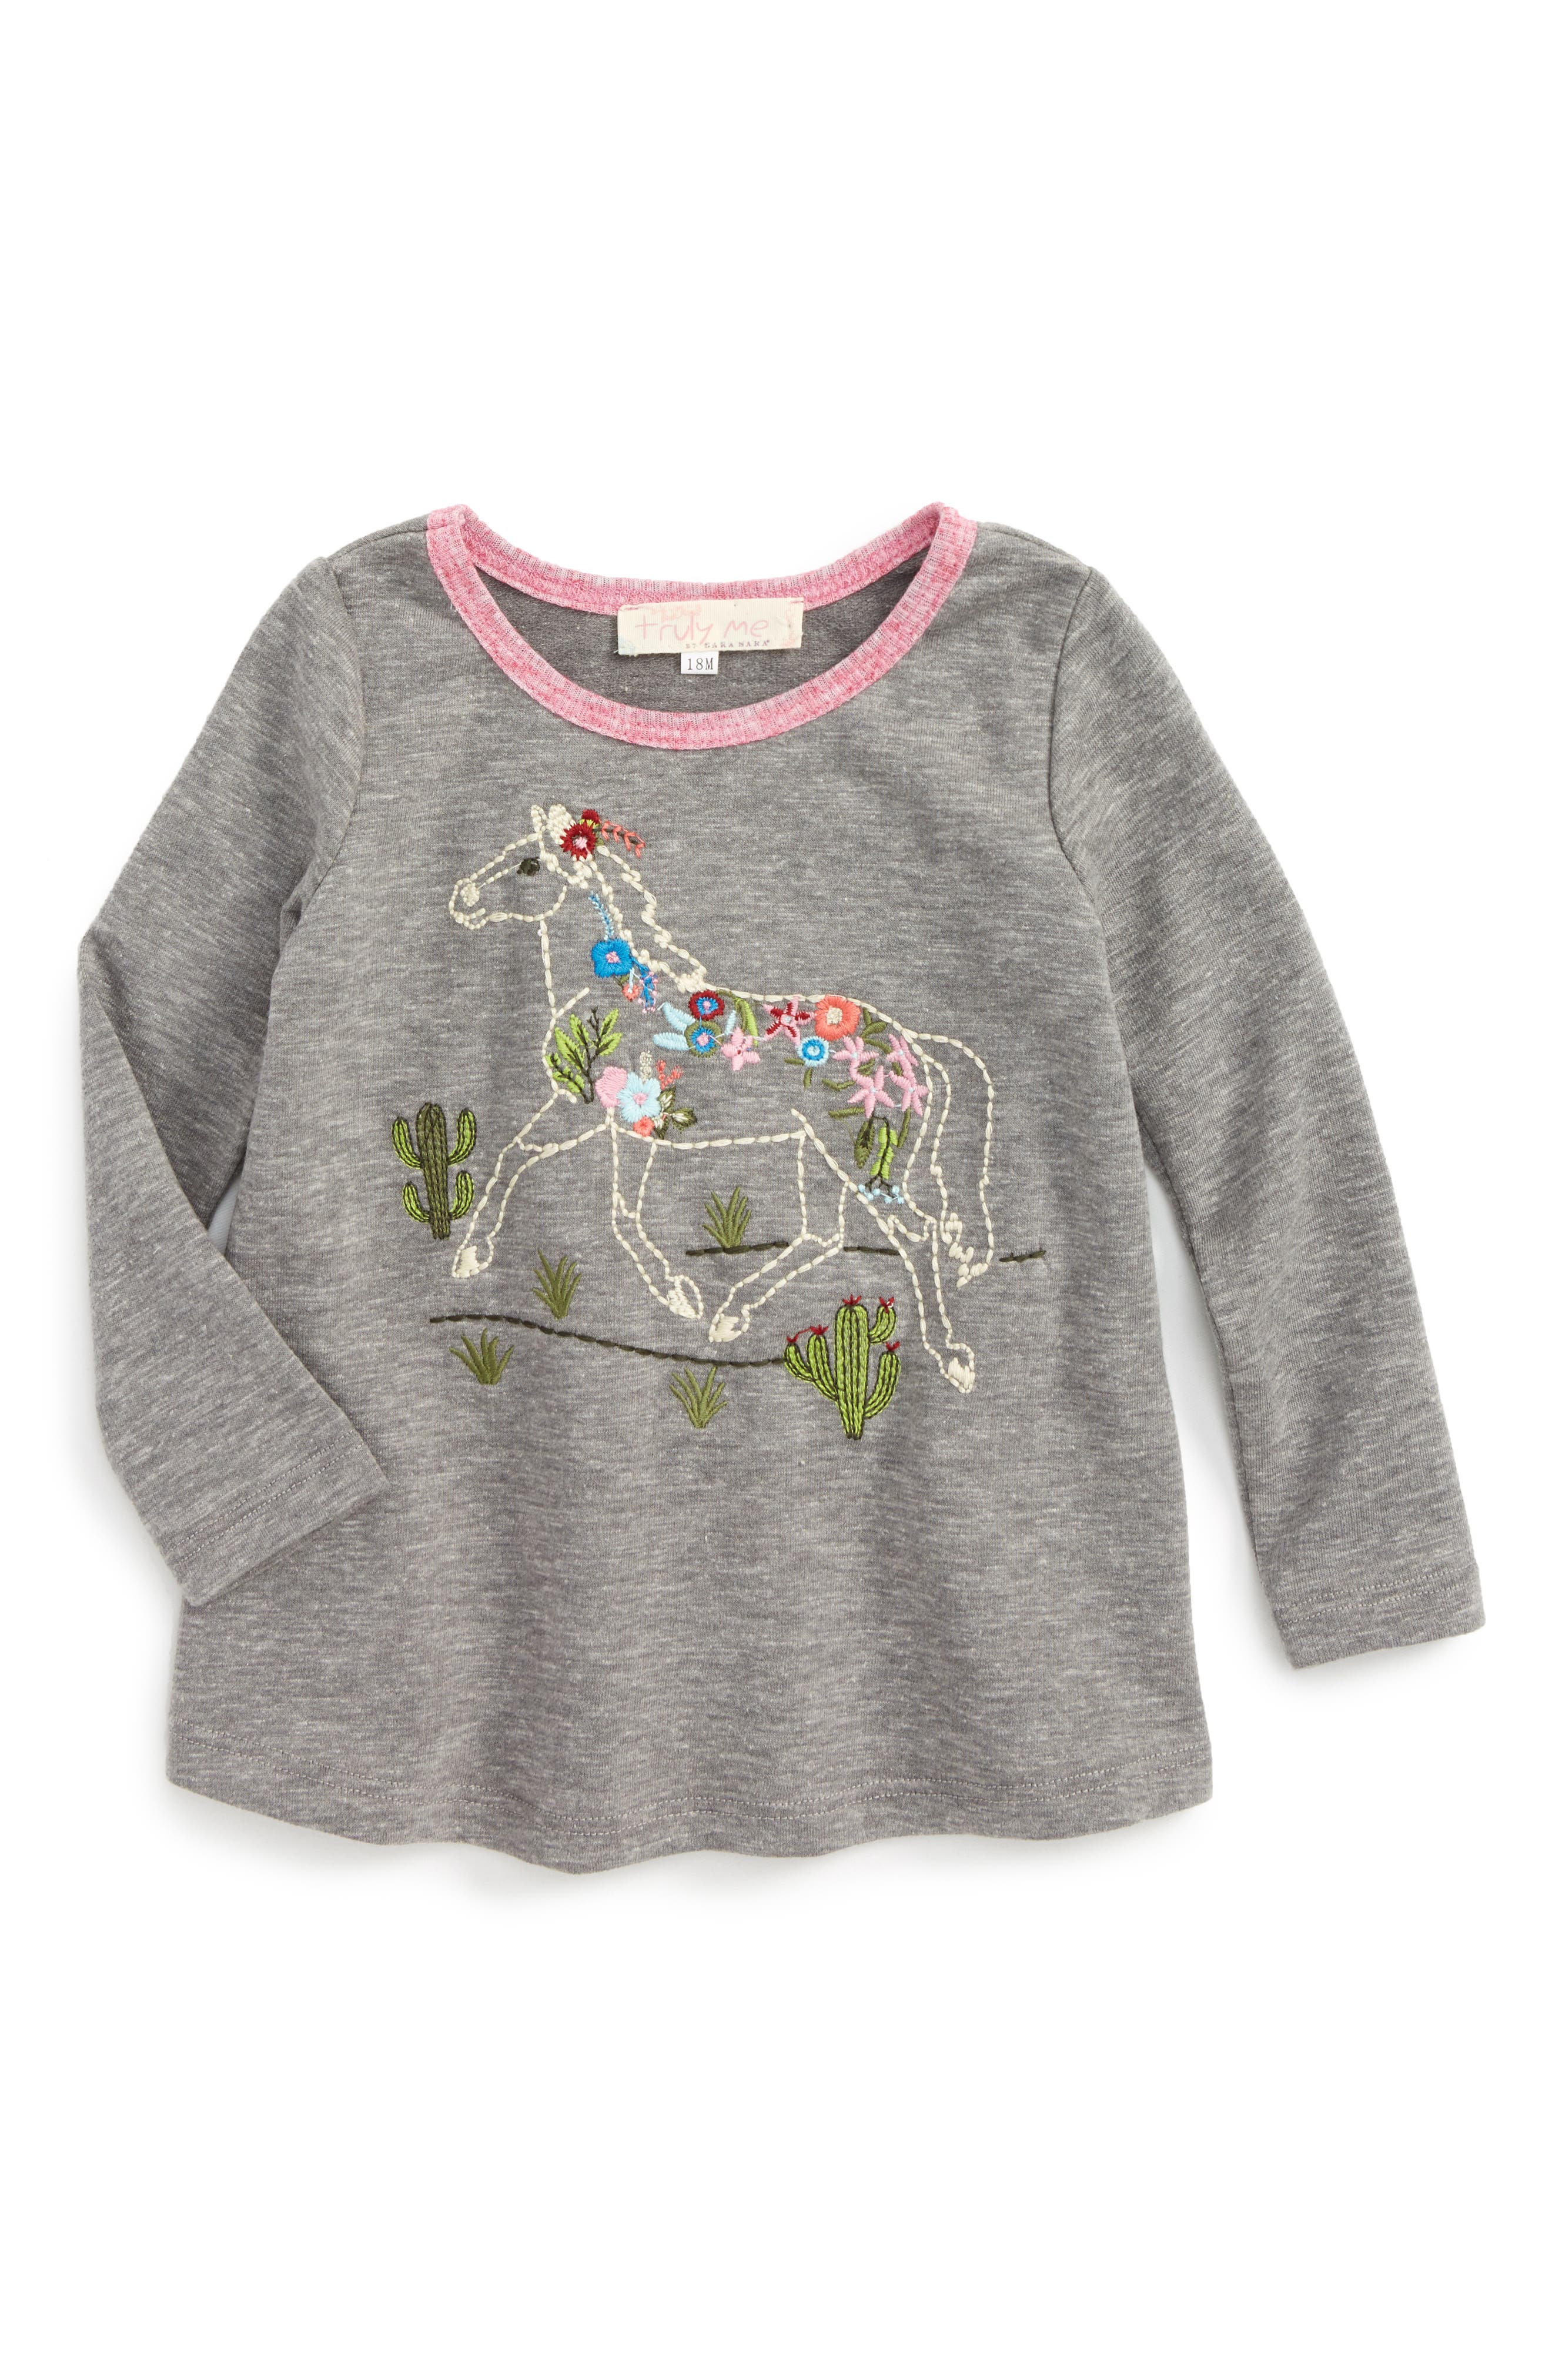 Embroidered Horse Tee,                         Main,                         color, Grey